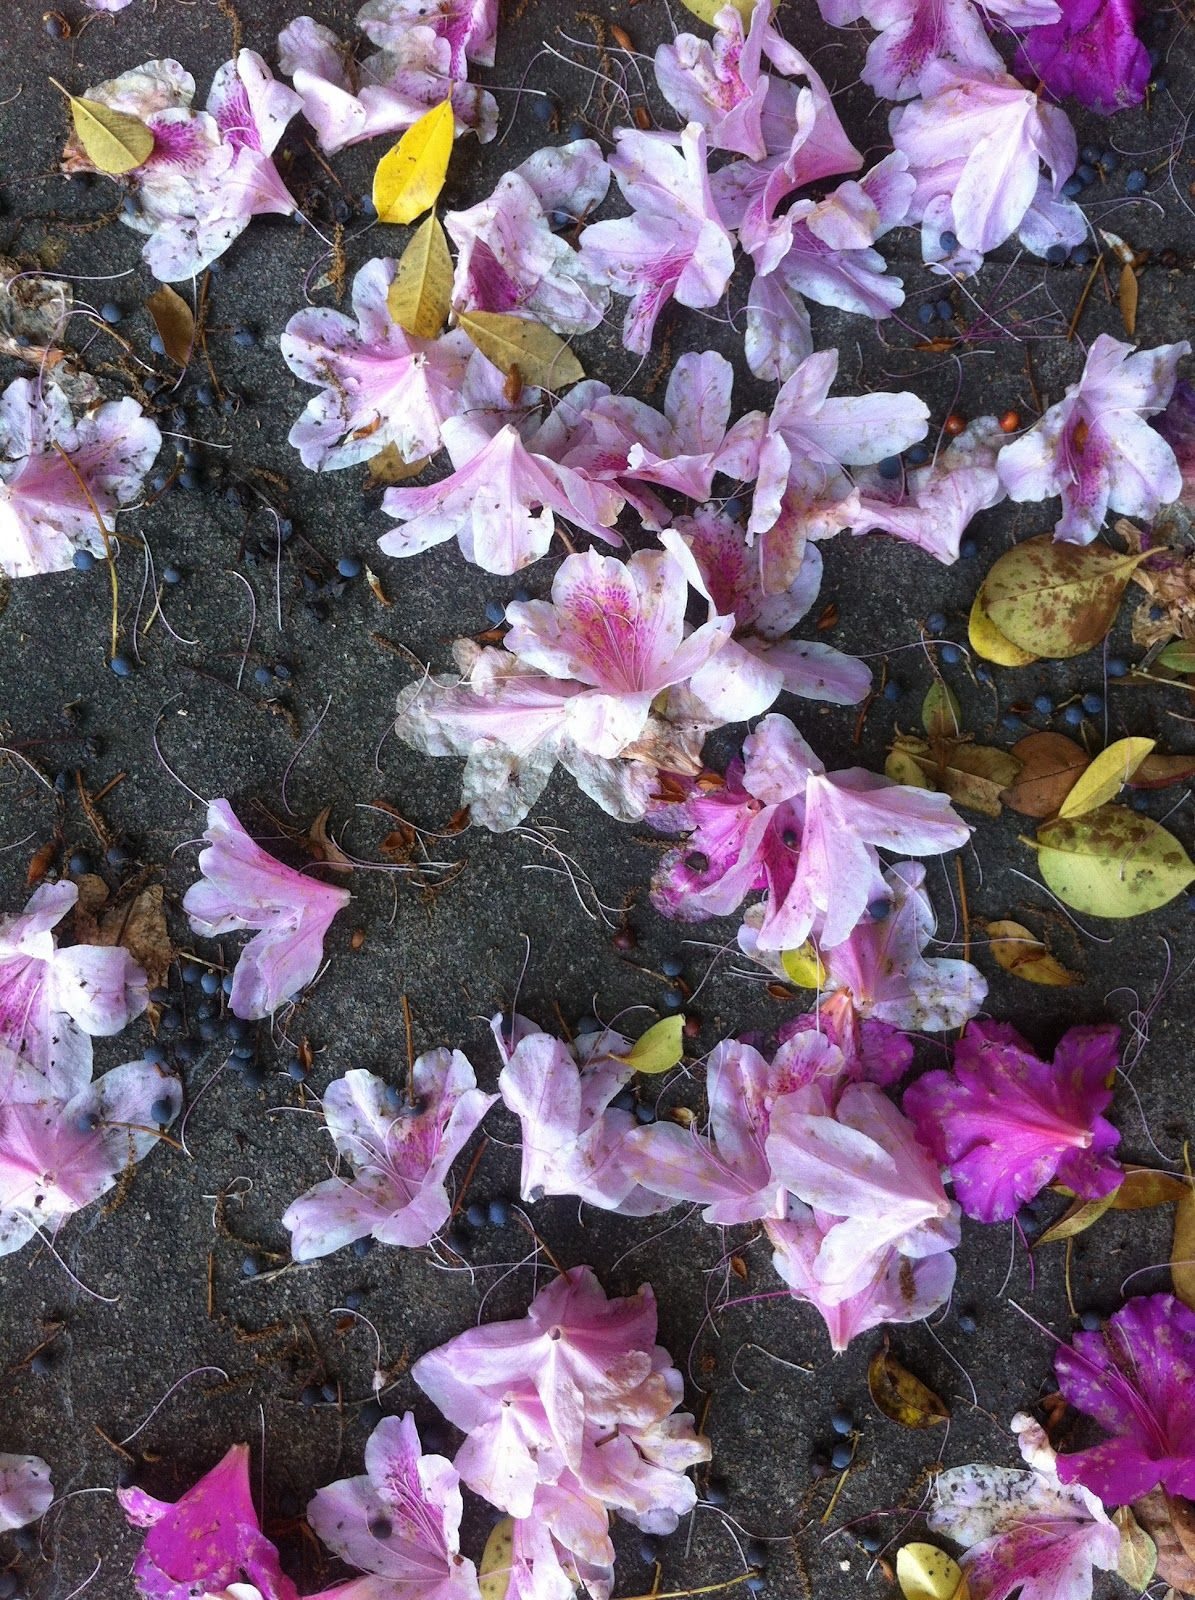 Scattered... flowers, dreams, hopes... reach out... touch it... you are almost there. Charleston, South Carolina May 2012